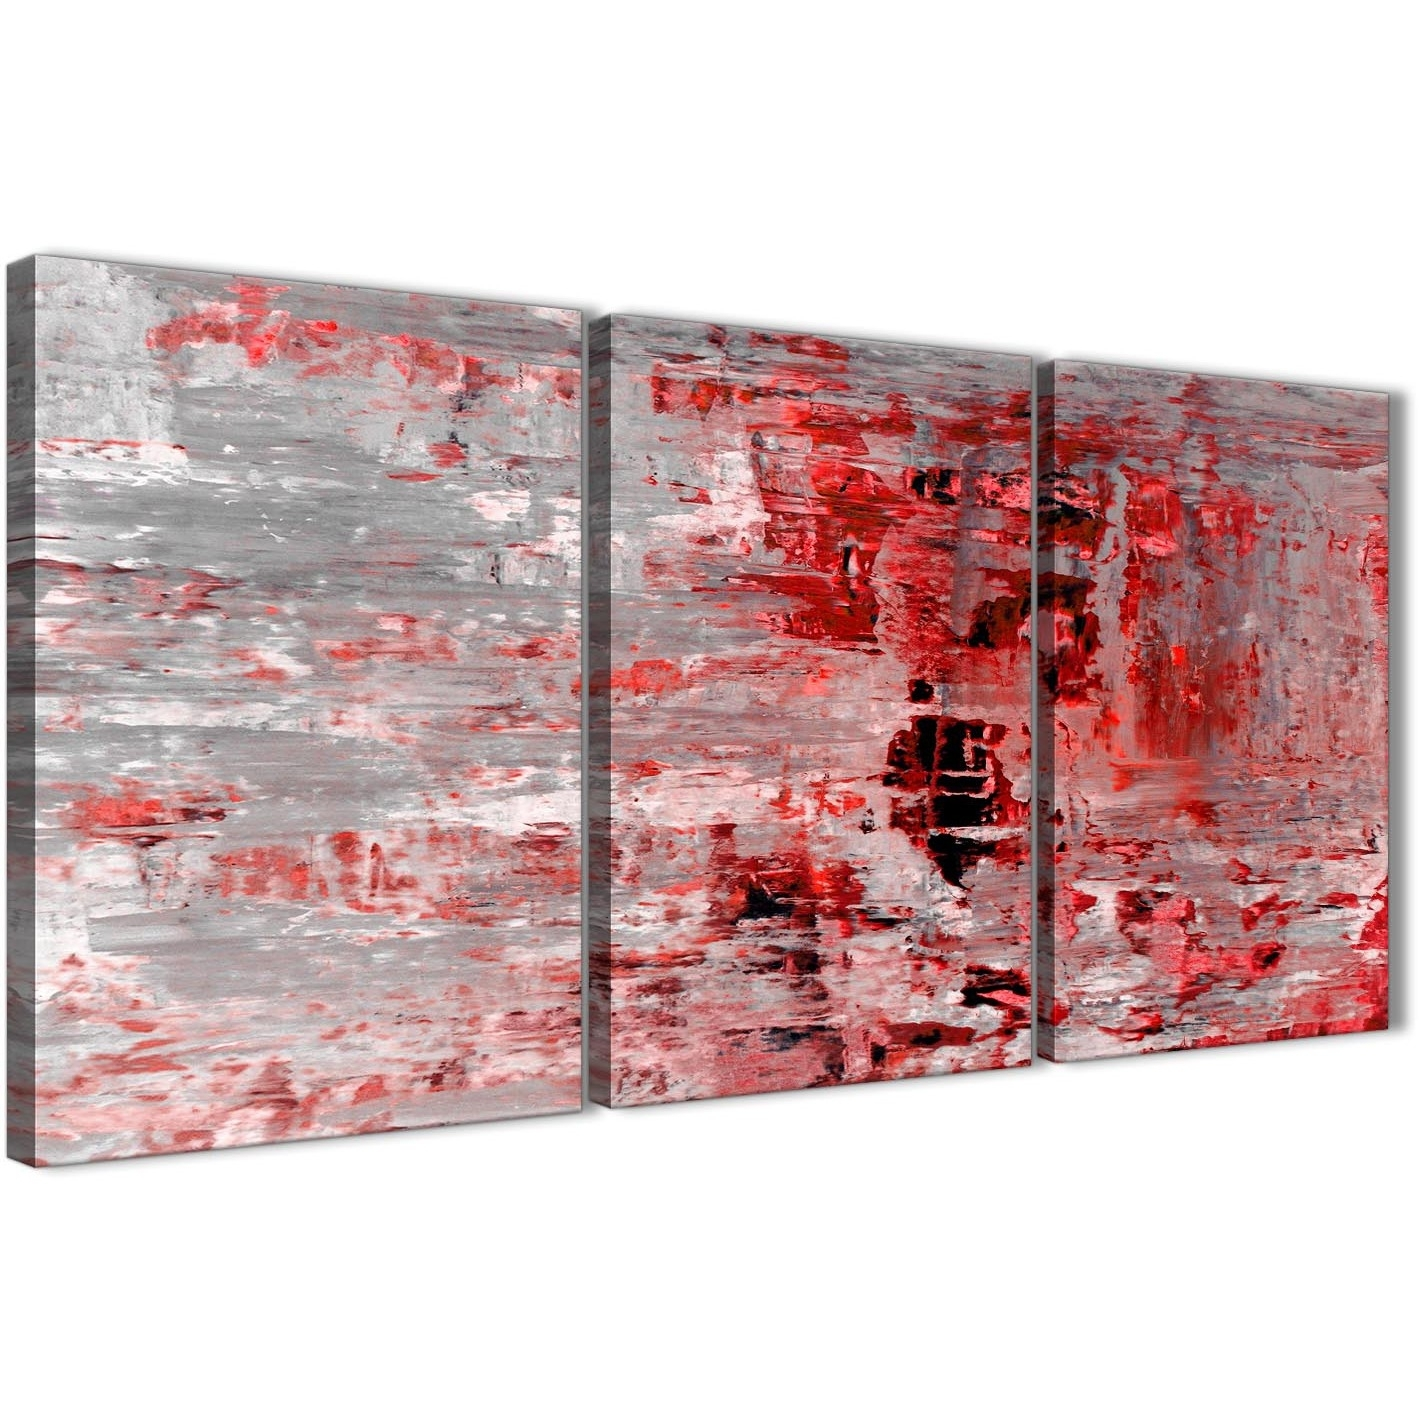 3 Piece Red Grey Painting Living Room Canvas Wall Art Decor For Best And Newest Kitchen Canvas Wall Art (Gallery 2 of 15)